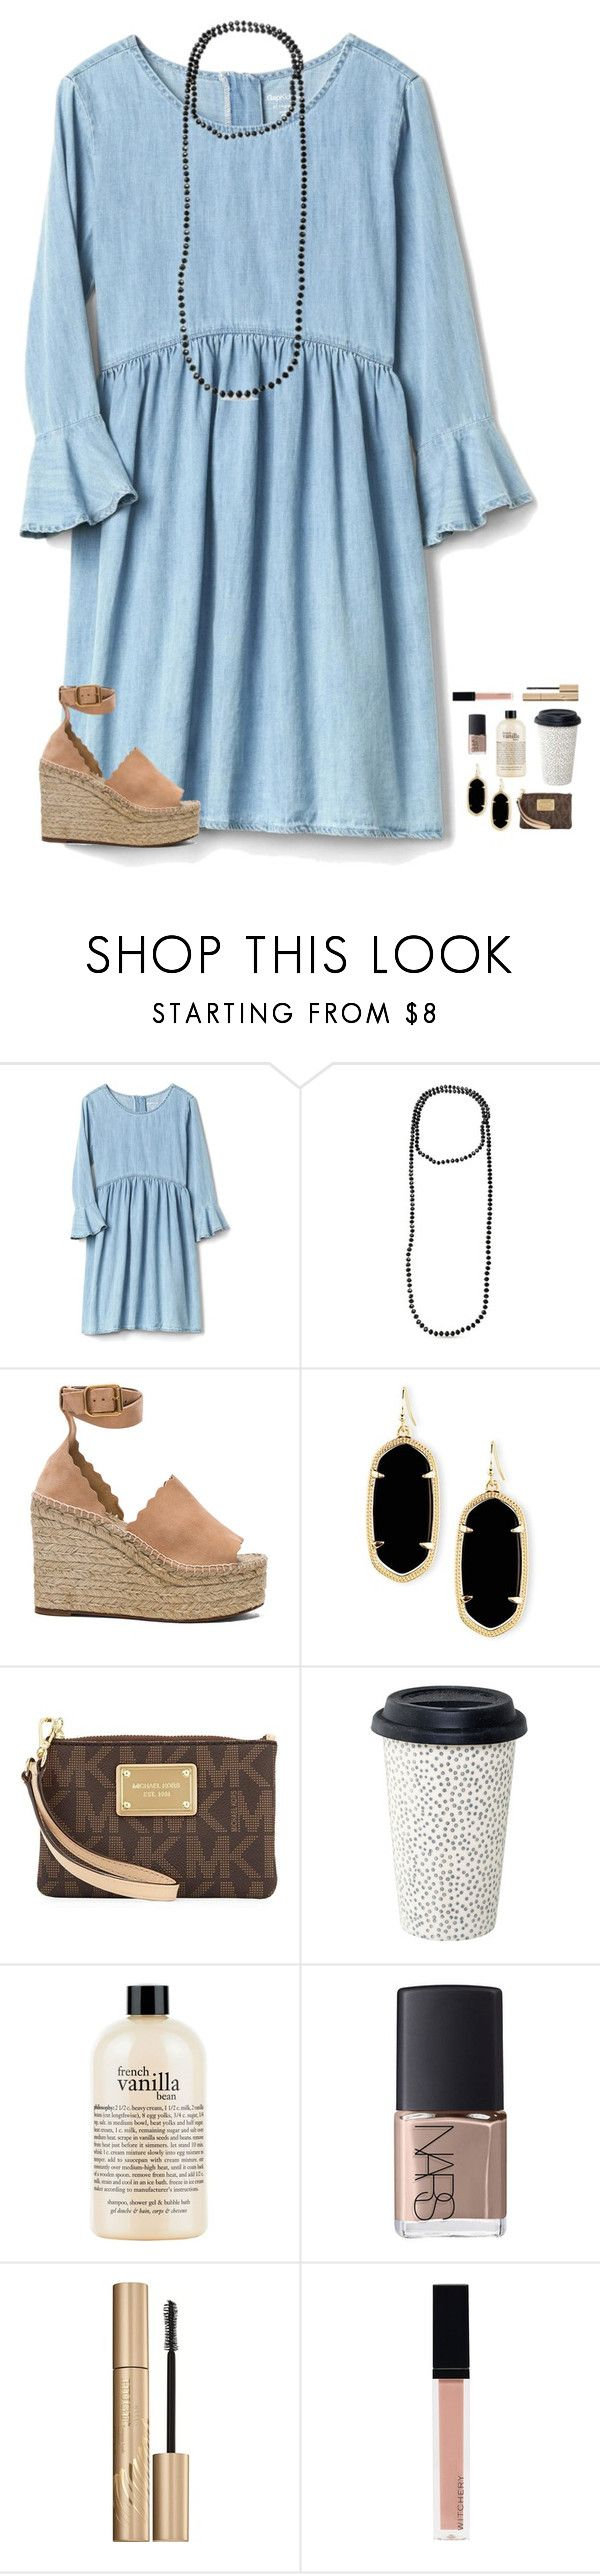 """let it be "" by elliegracee ❤ liked on Polyvore featuring Chloé, Kendra Scott, MICHAEL Michael Kors, philosophy, NARS Cosmetics, Stila and Witchery"